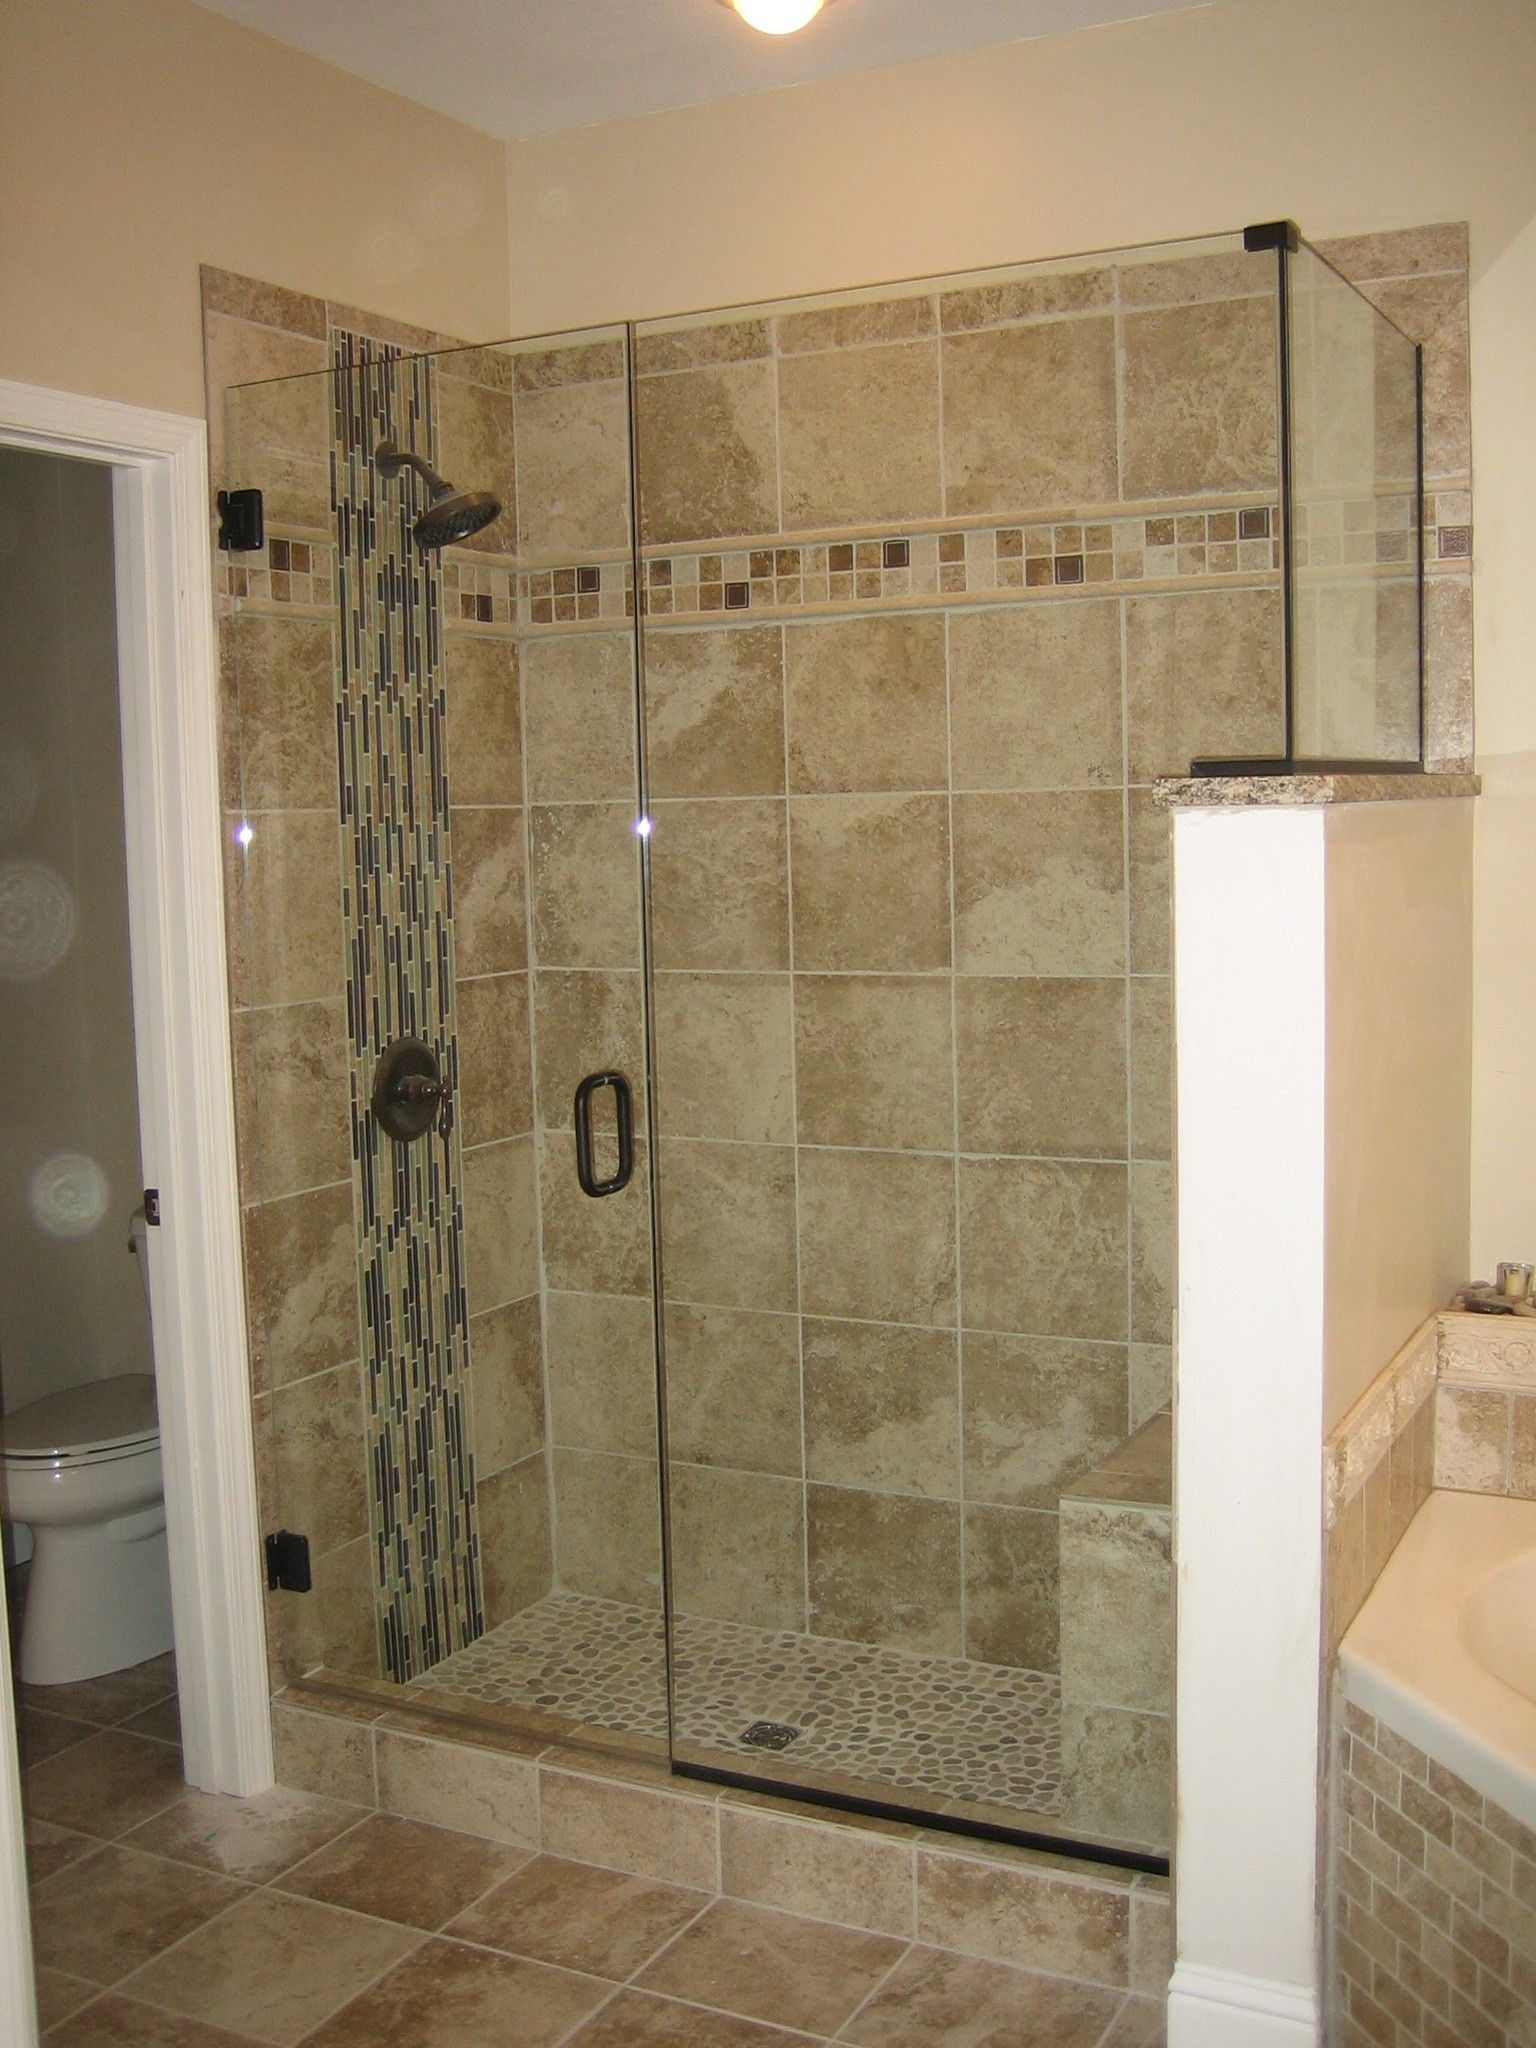 Tile Shower Enclosure Ideas   Google Search